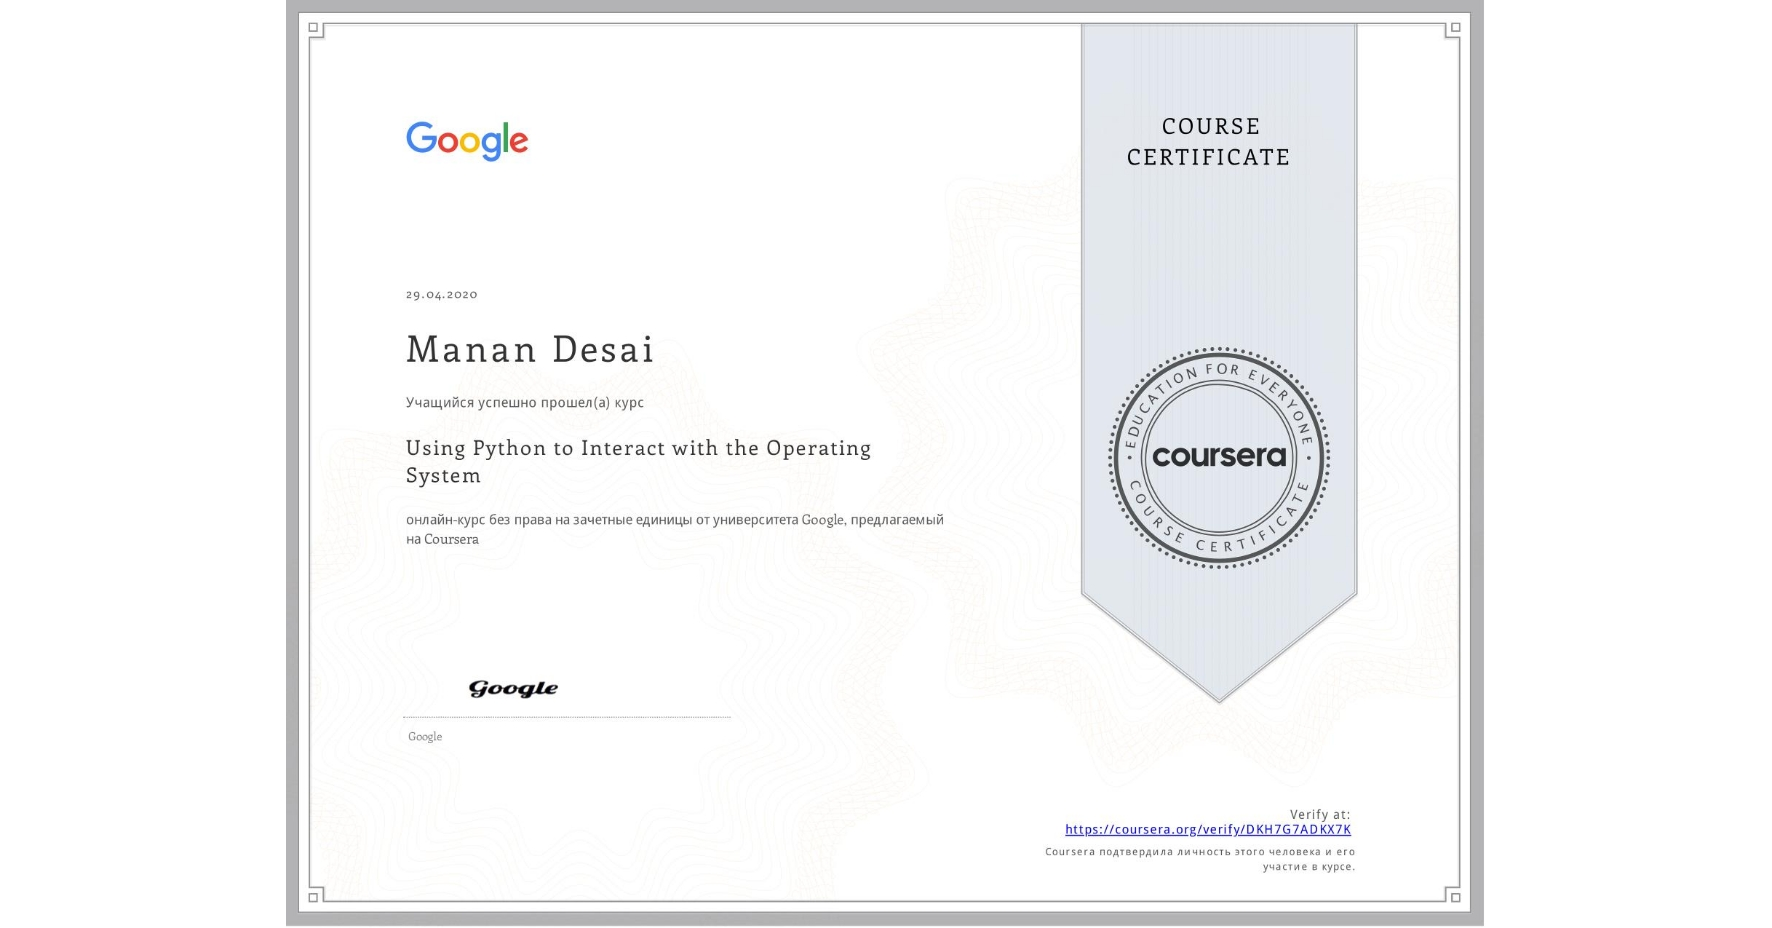 View certificate for Dhhyey Desai, Using Python to Interact with the Operating System, an online non-credit course authorized by Google and offered through Coursera